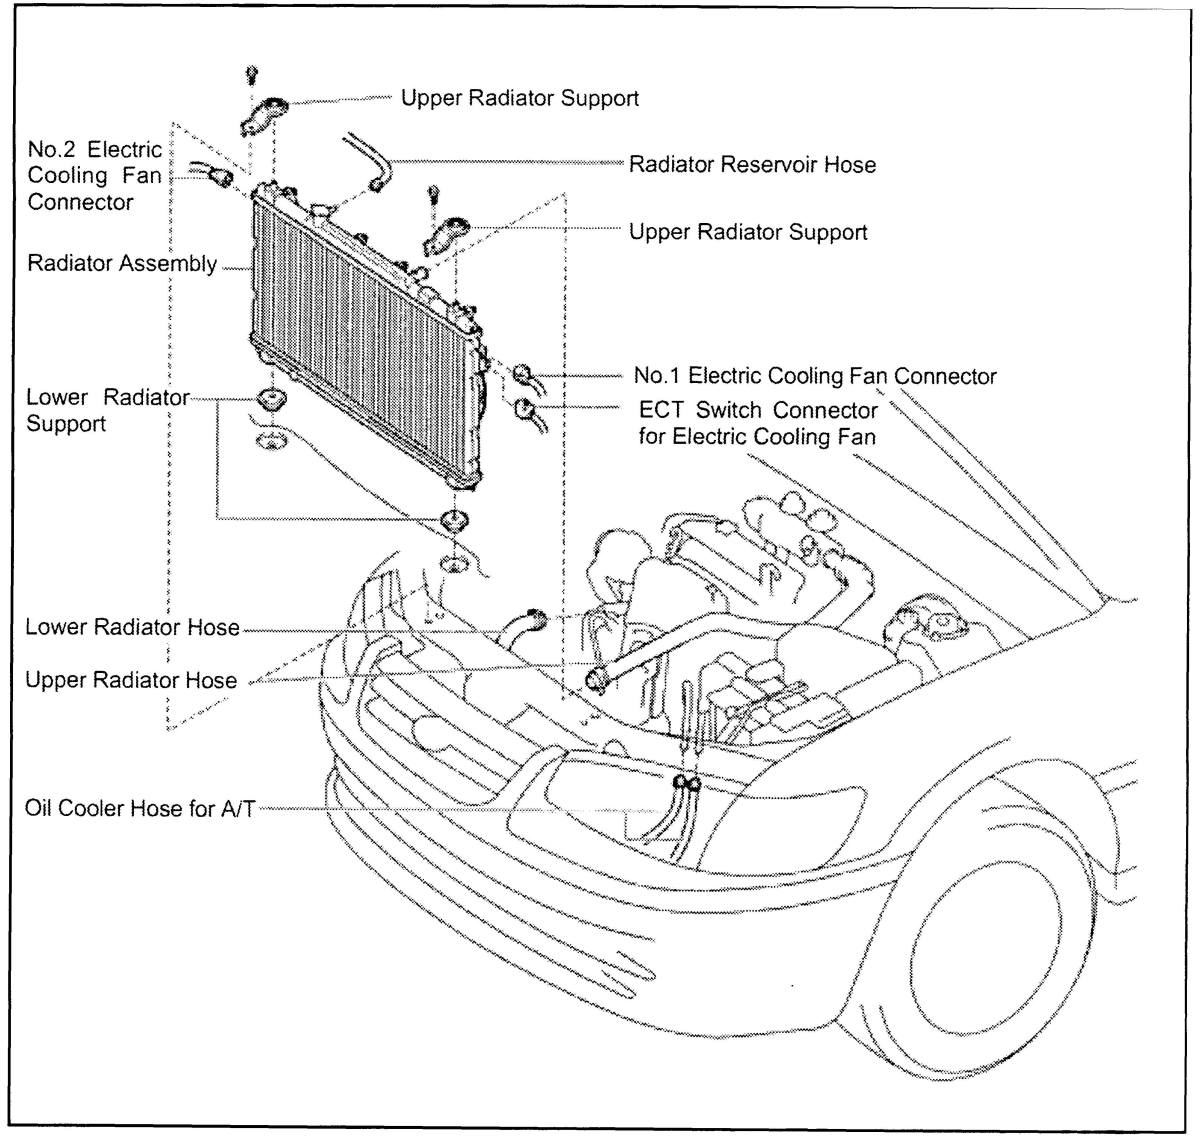 Chevy 4 3 Oil Pressure Switch Location besides T5456228 Trailblazer serpentine belt diagram also 2006 Gmc Envoy Temp Sensor Location in addition 3713b 1998 S10 Blazer Freeze Frame Ect Reading 40 Deg besides RepairGuideContent. on chevy trailblazer oil pressure switch location